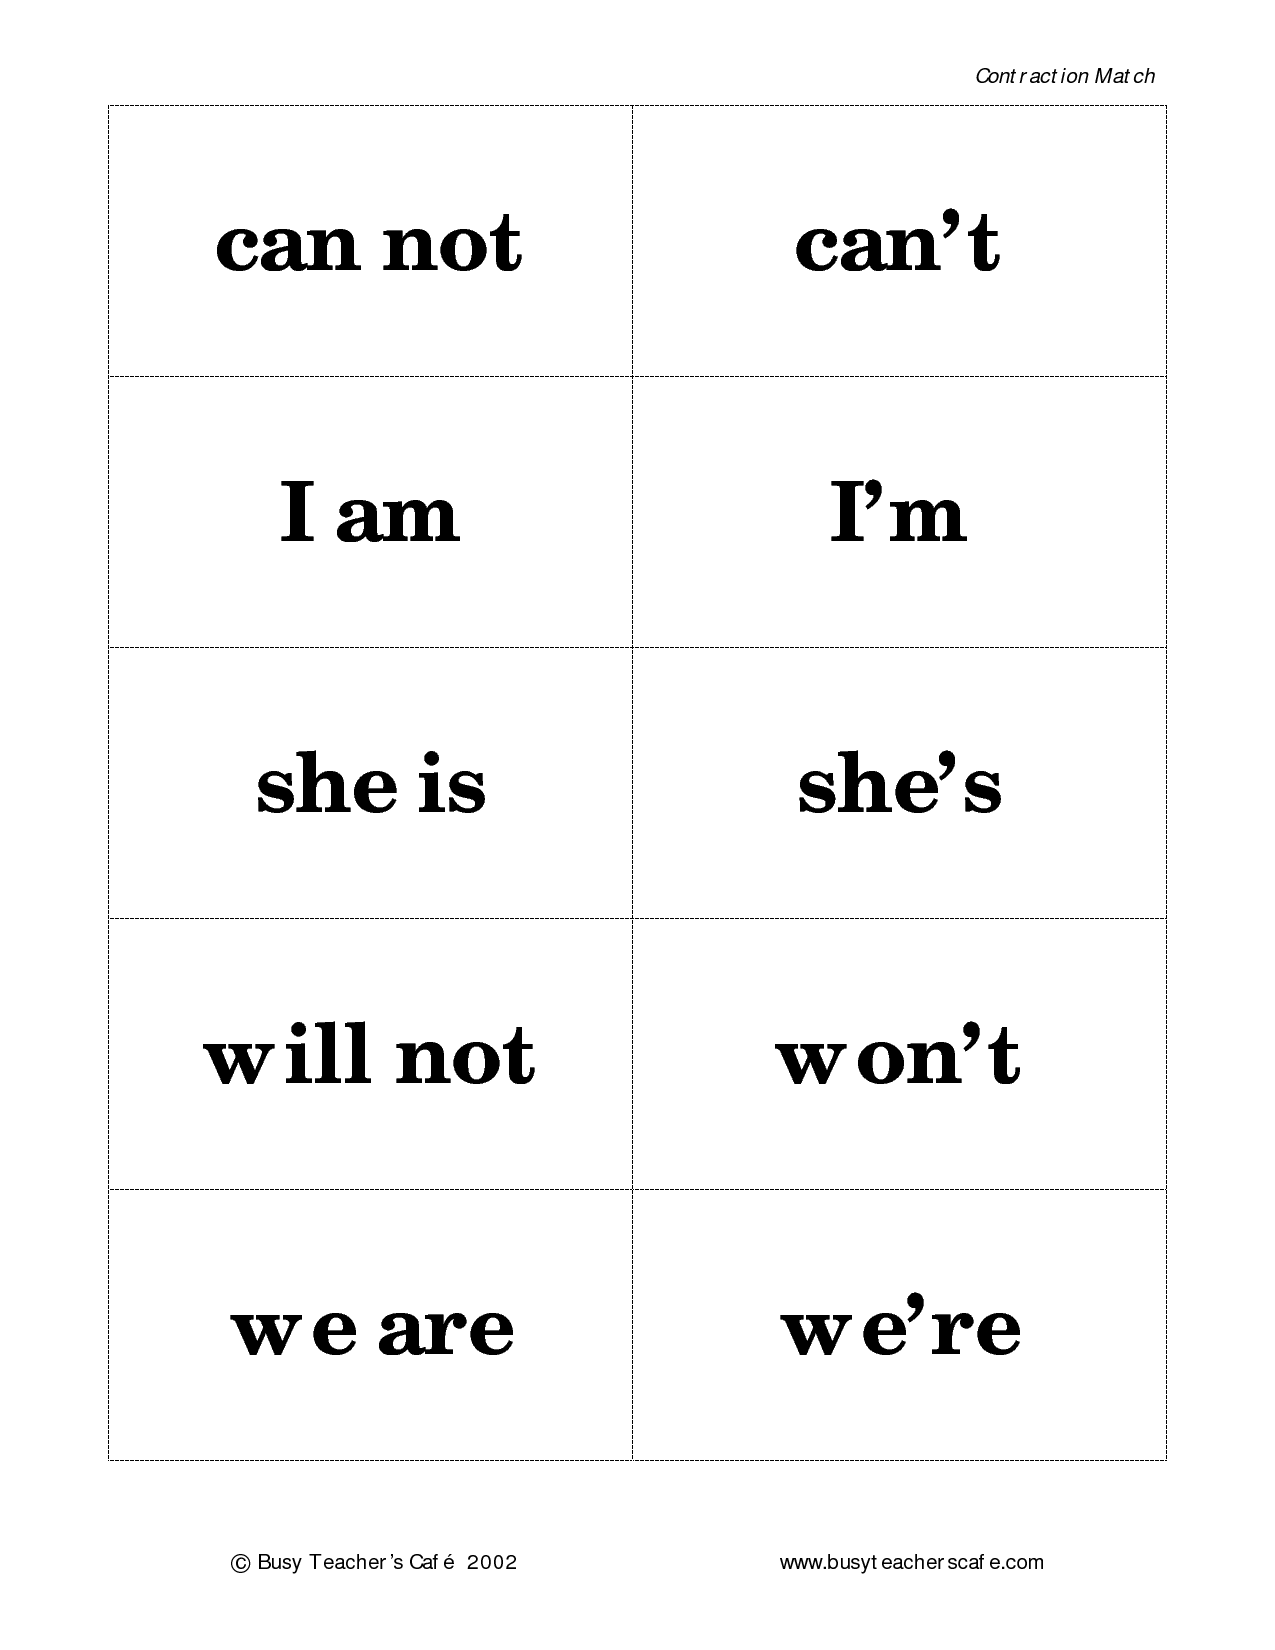 3rd Grade Contractions Worksheet